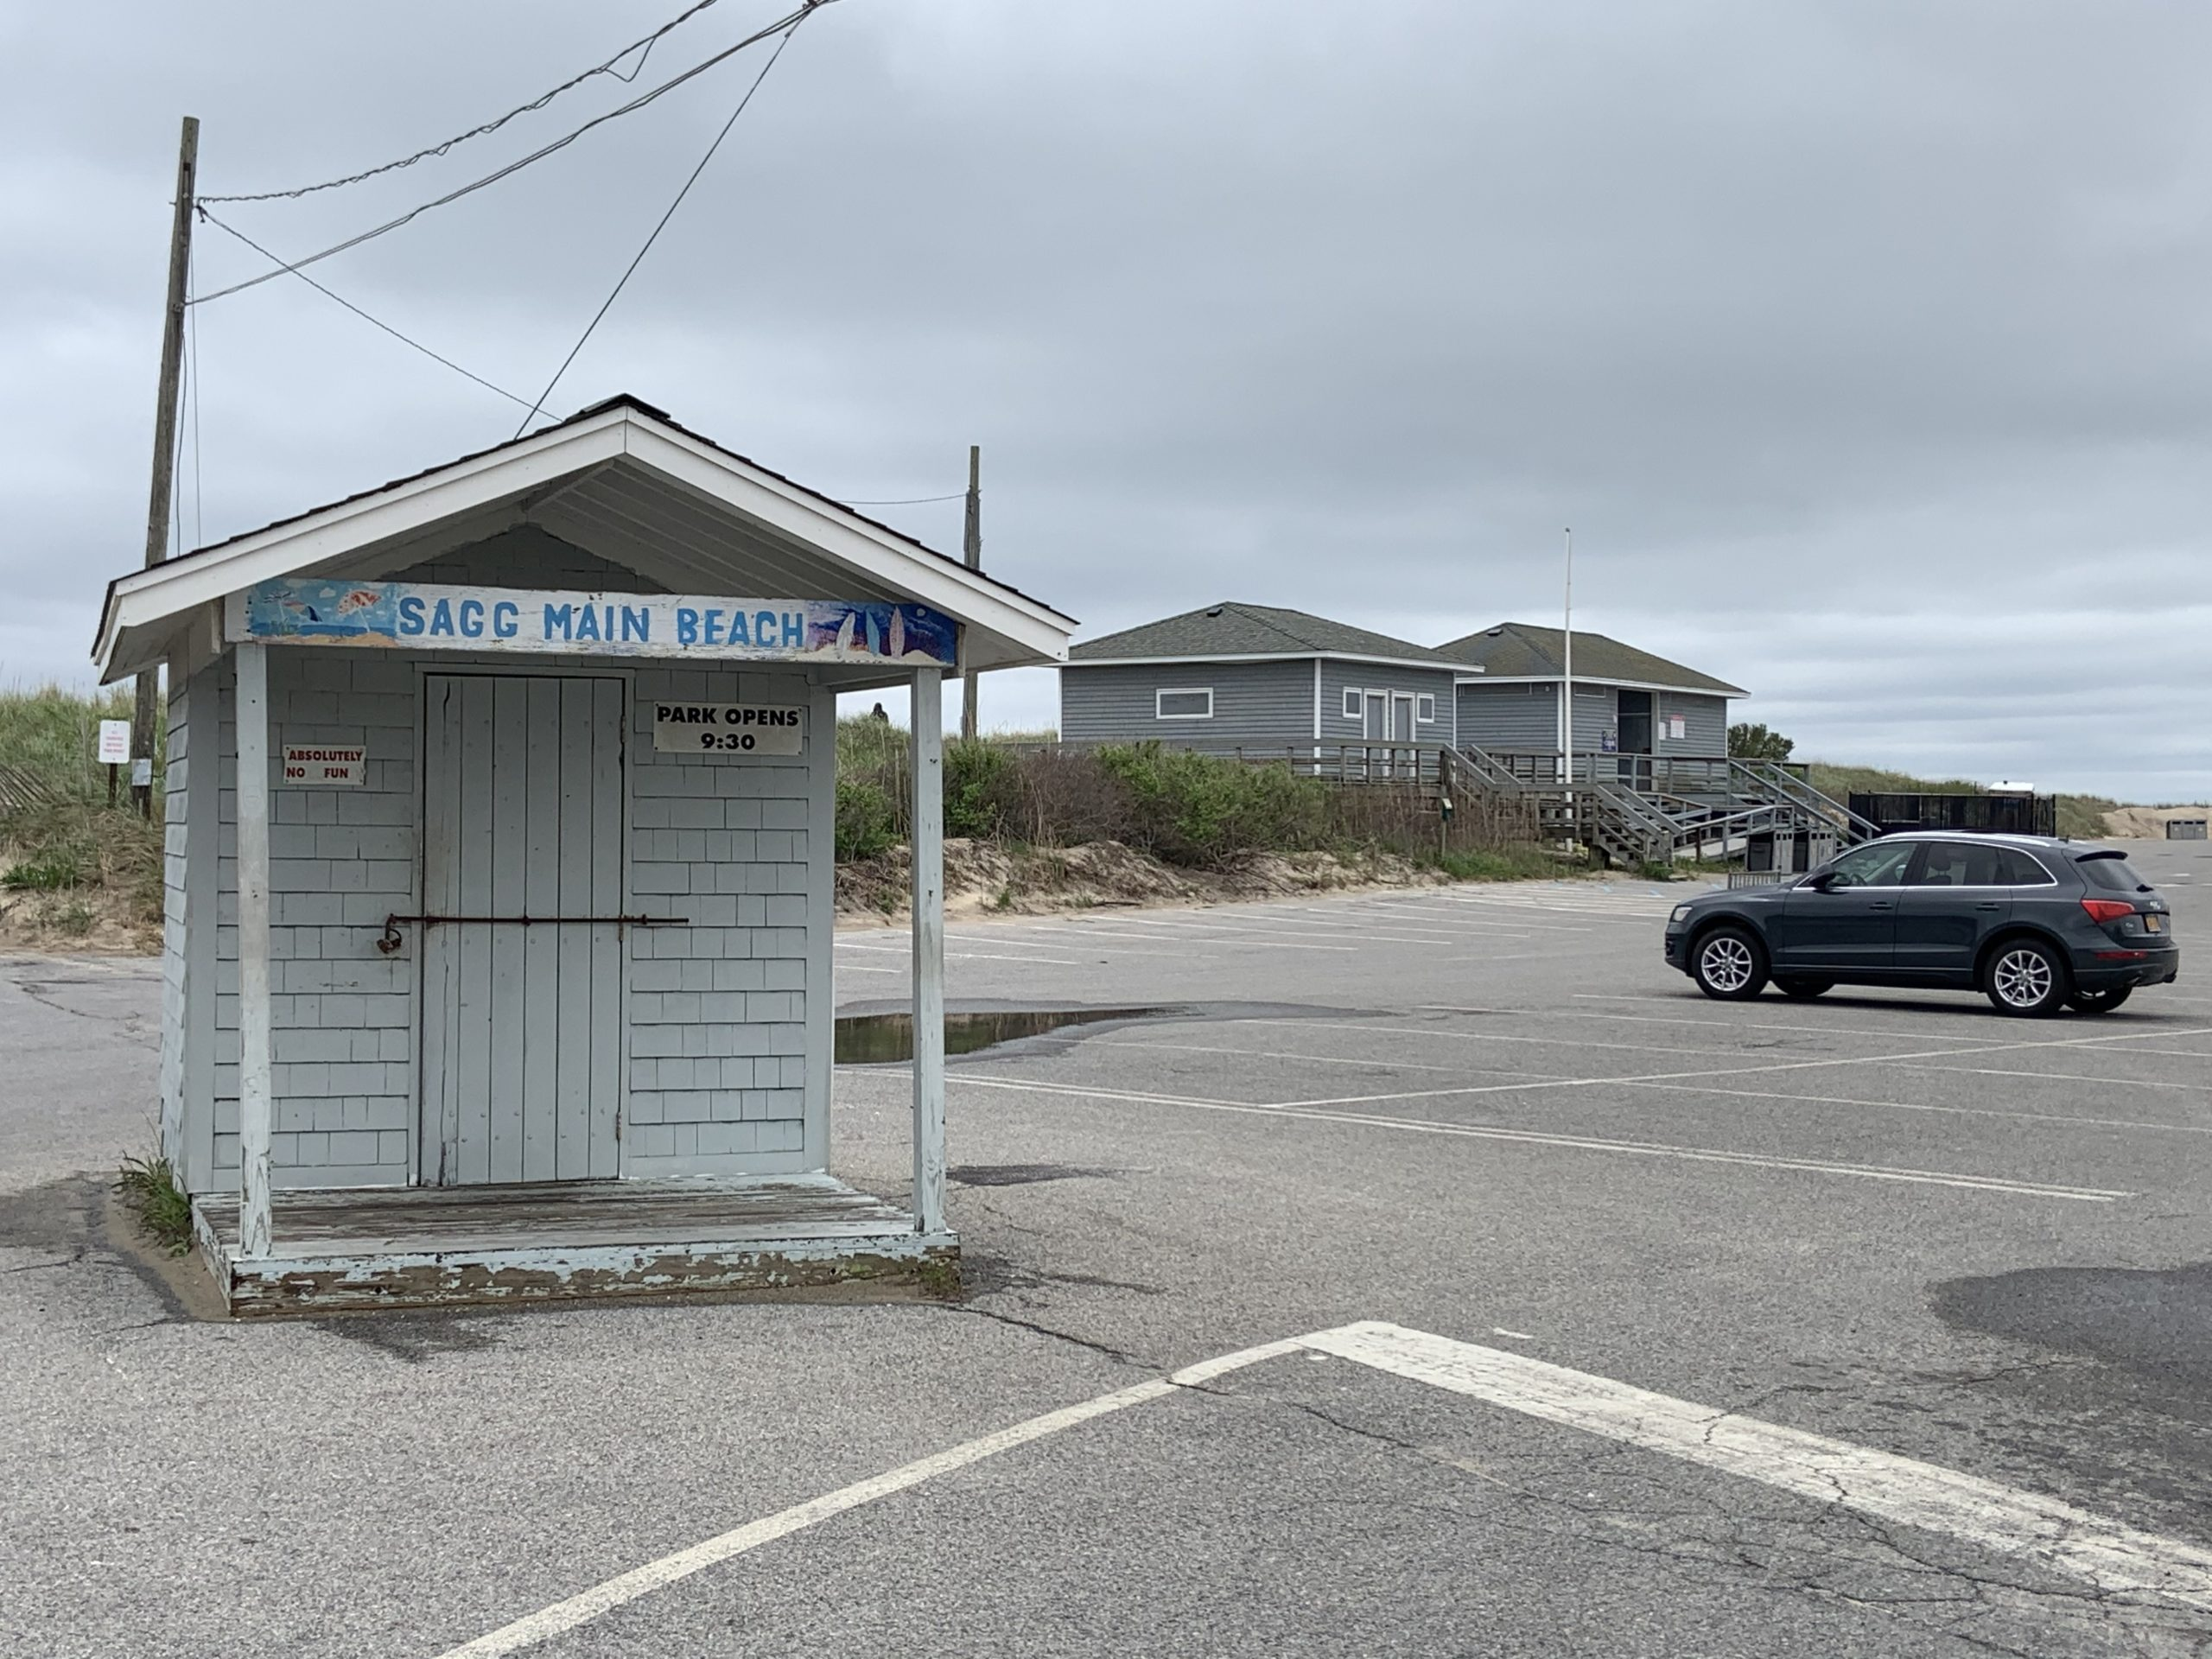 Residents of the the East Hampton Town side of Sag Harbor Village will get to use Sagg Main, Mecox, and Scott Cameron ocean beaches, as well as Long Beach at the same price as Southampton Town residents under a plan worked out this week. STEPHEN J. KOTZ